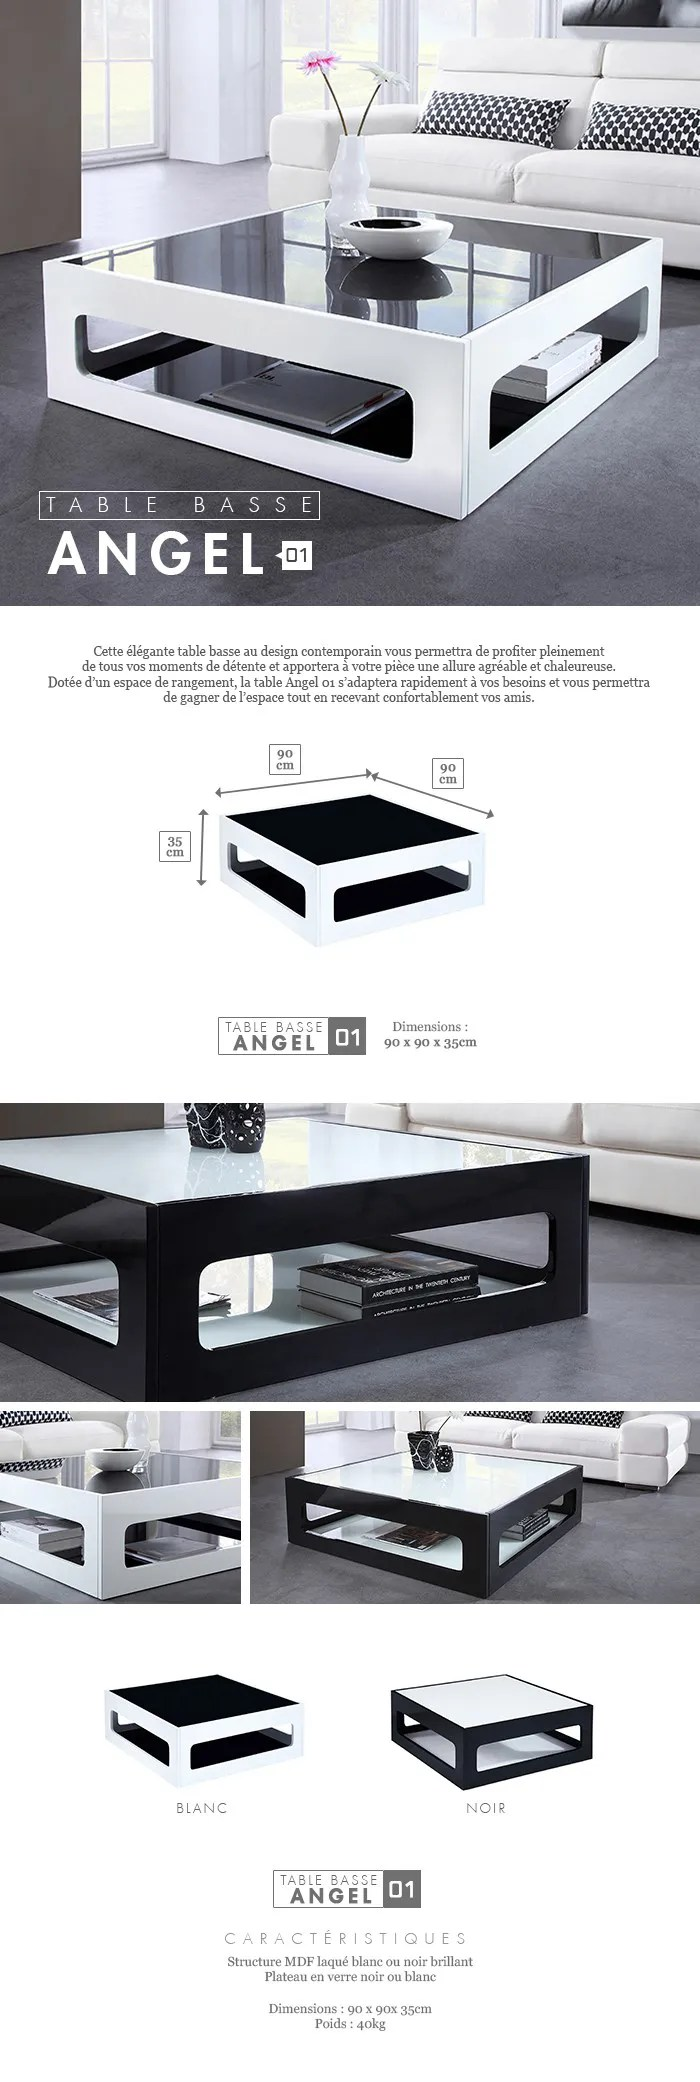 Table Basse Laquee Blanc Angel Table Basse Carrée Style Contemporain Laquée Blanc Brillant